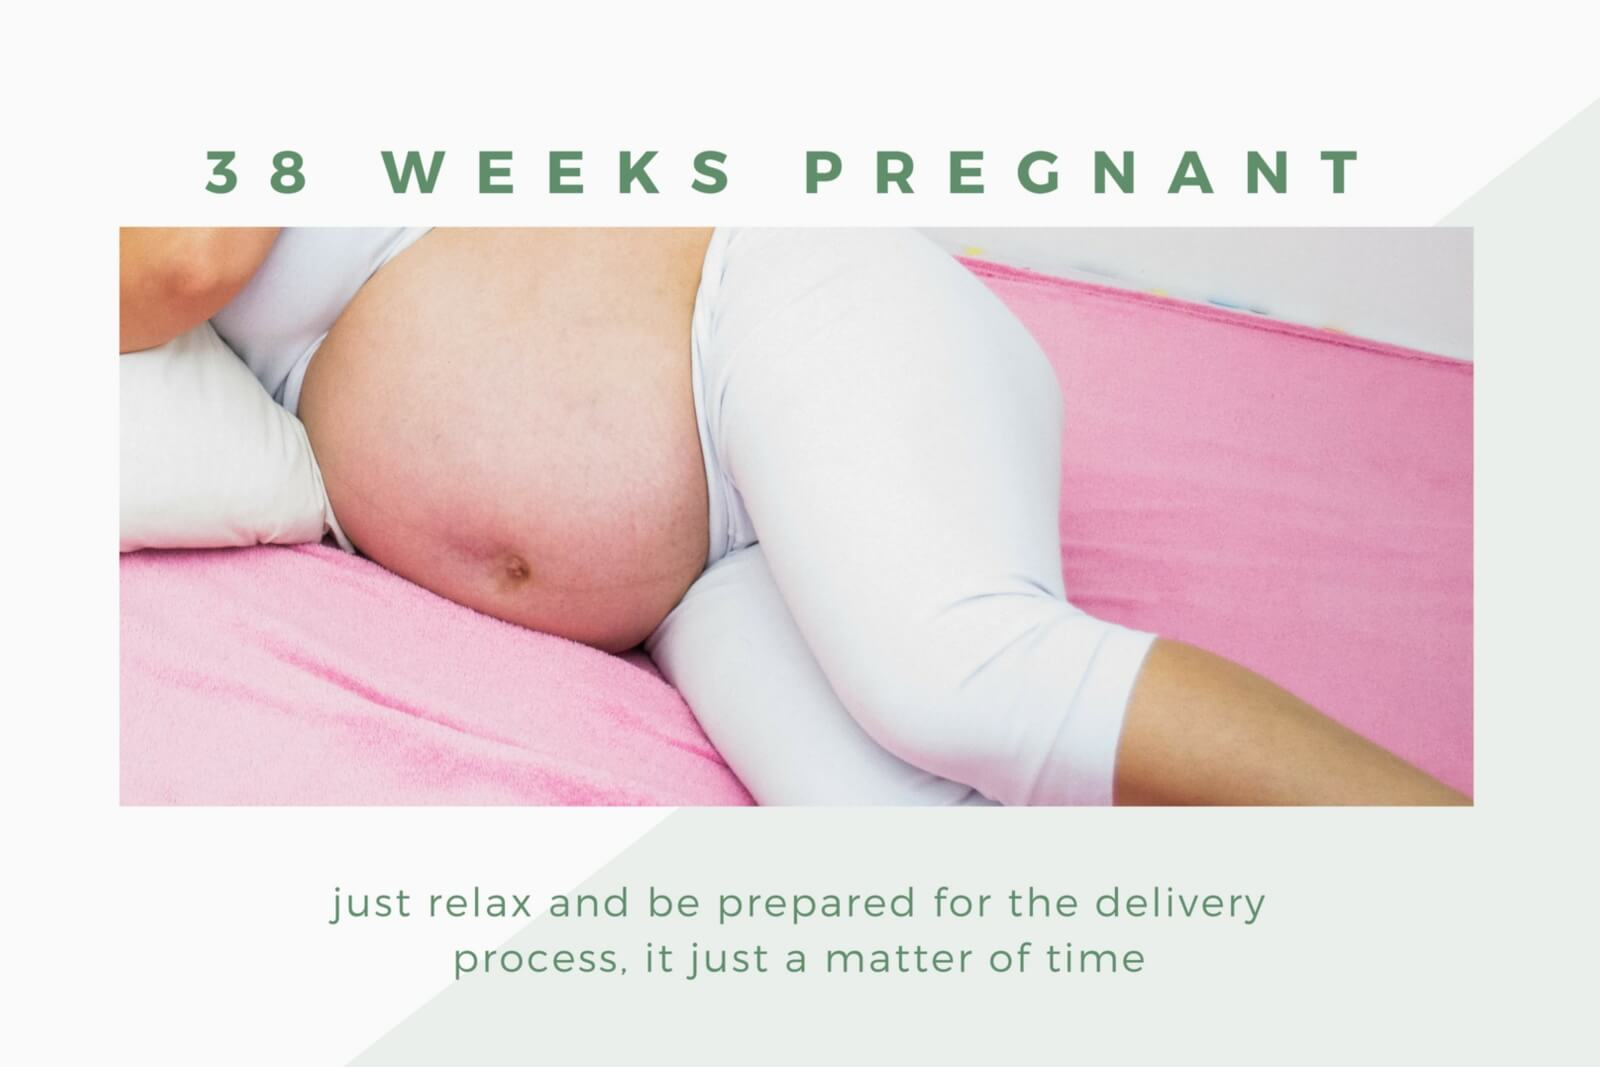 38-Weeks-Pregnant-Hero-Image